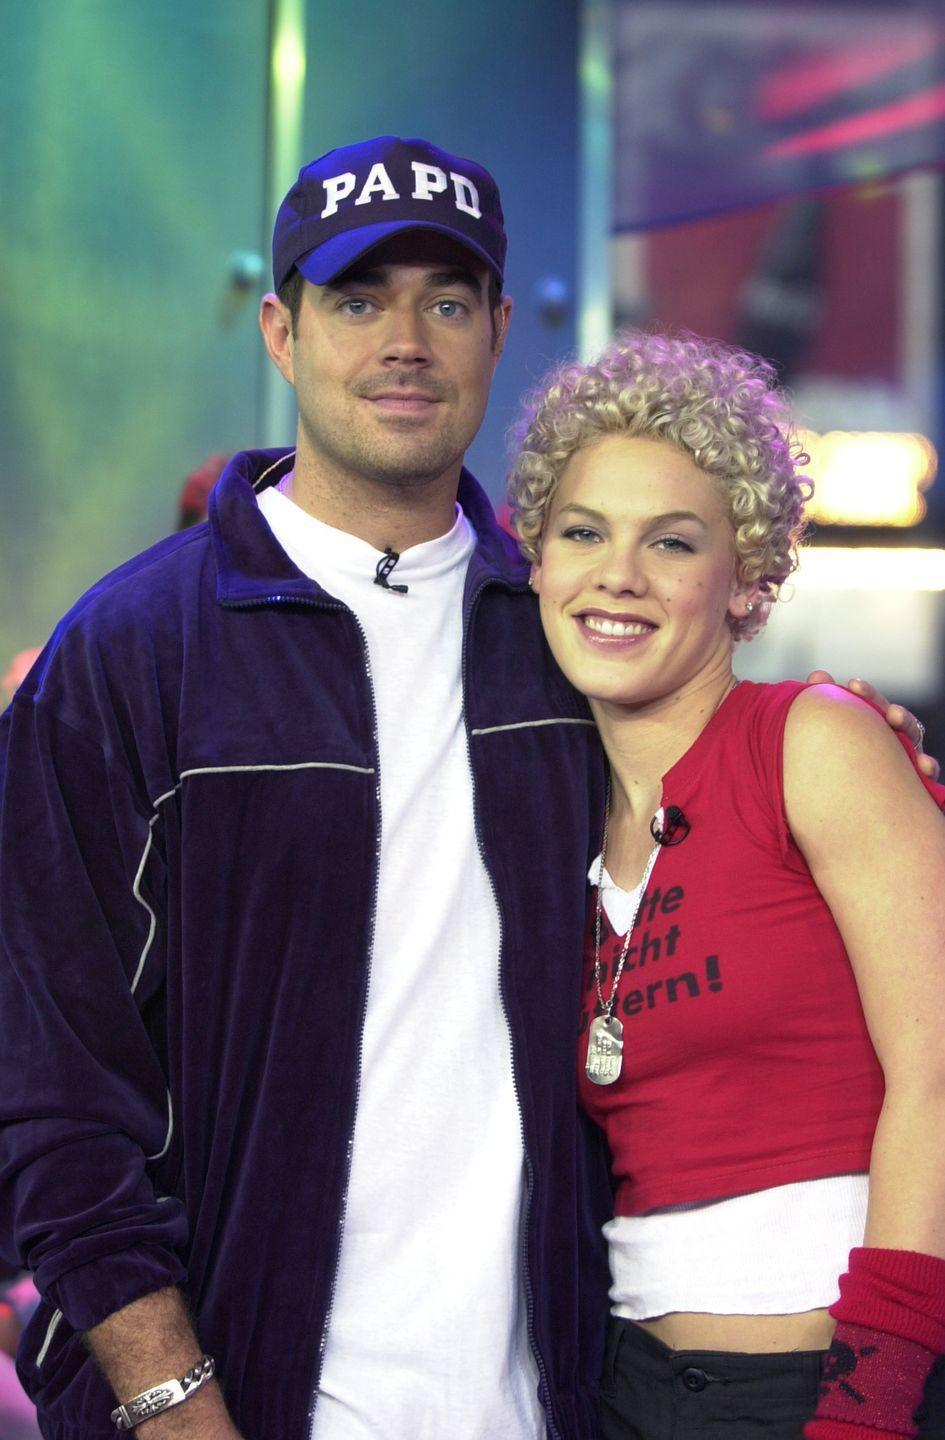 <p>Dog tag necklace, layered t-shirts, arm warmer, P!nk has all the makings for a classic 2000s punk rock look. Well except for the orphan Annie curls. </p>